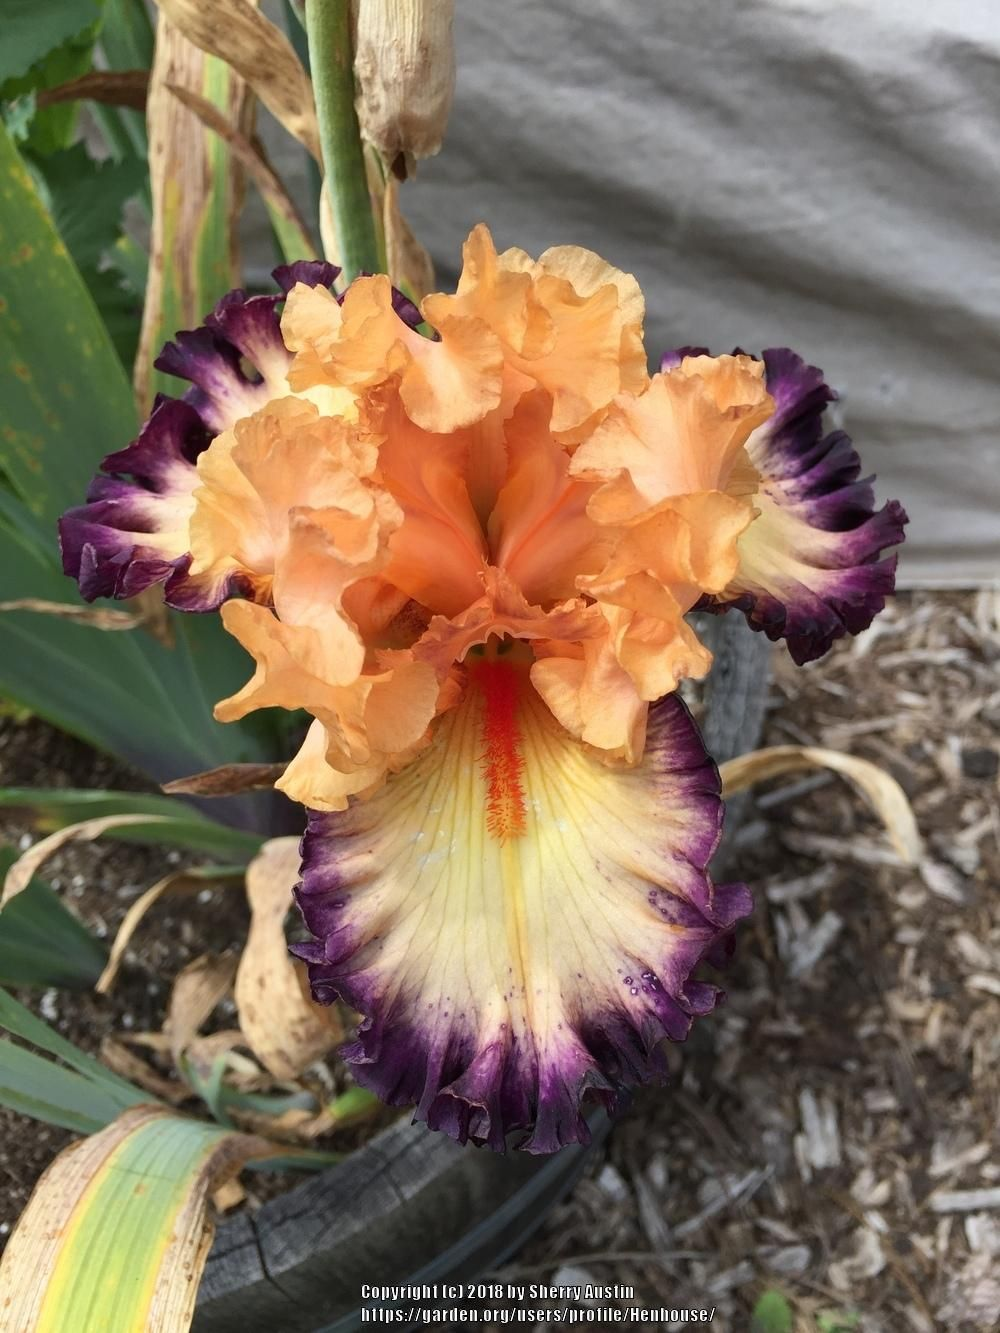 Irises Plant Care And Collection Of Varieties Garden Org Iris Flowers Iris Garden Rose Plant Care